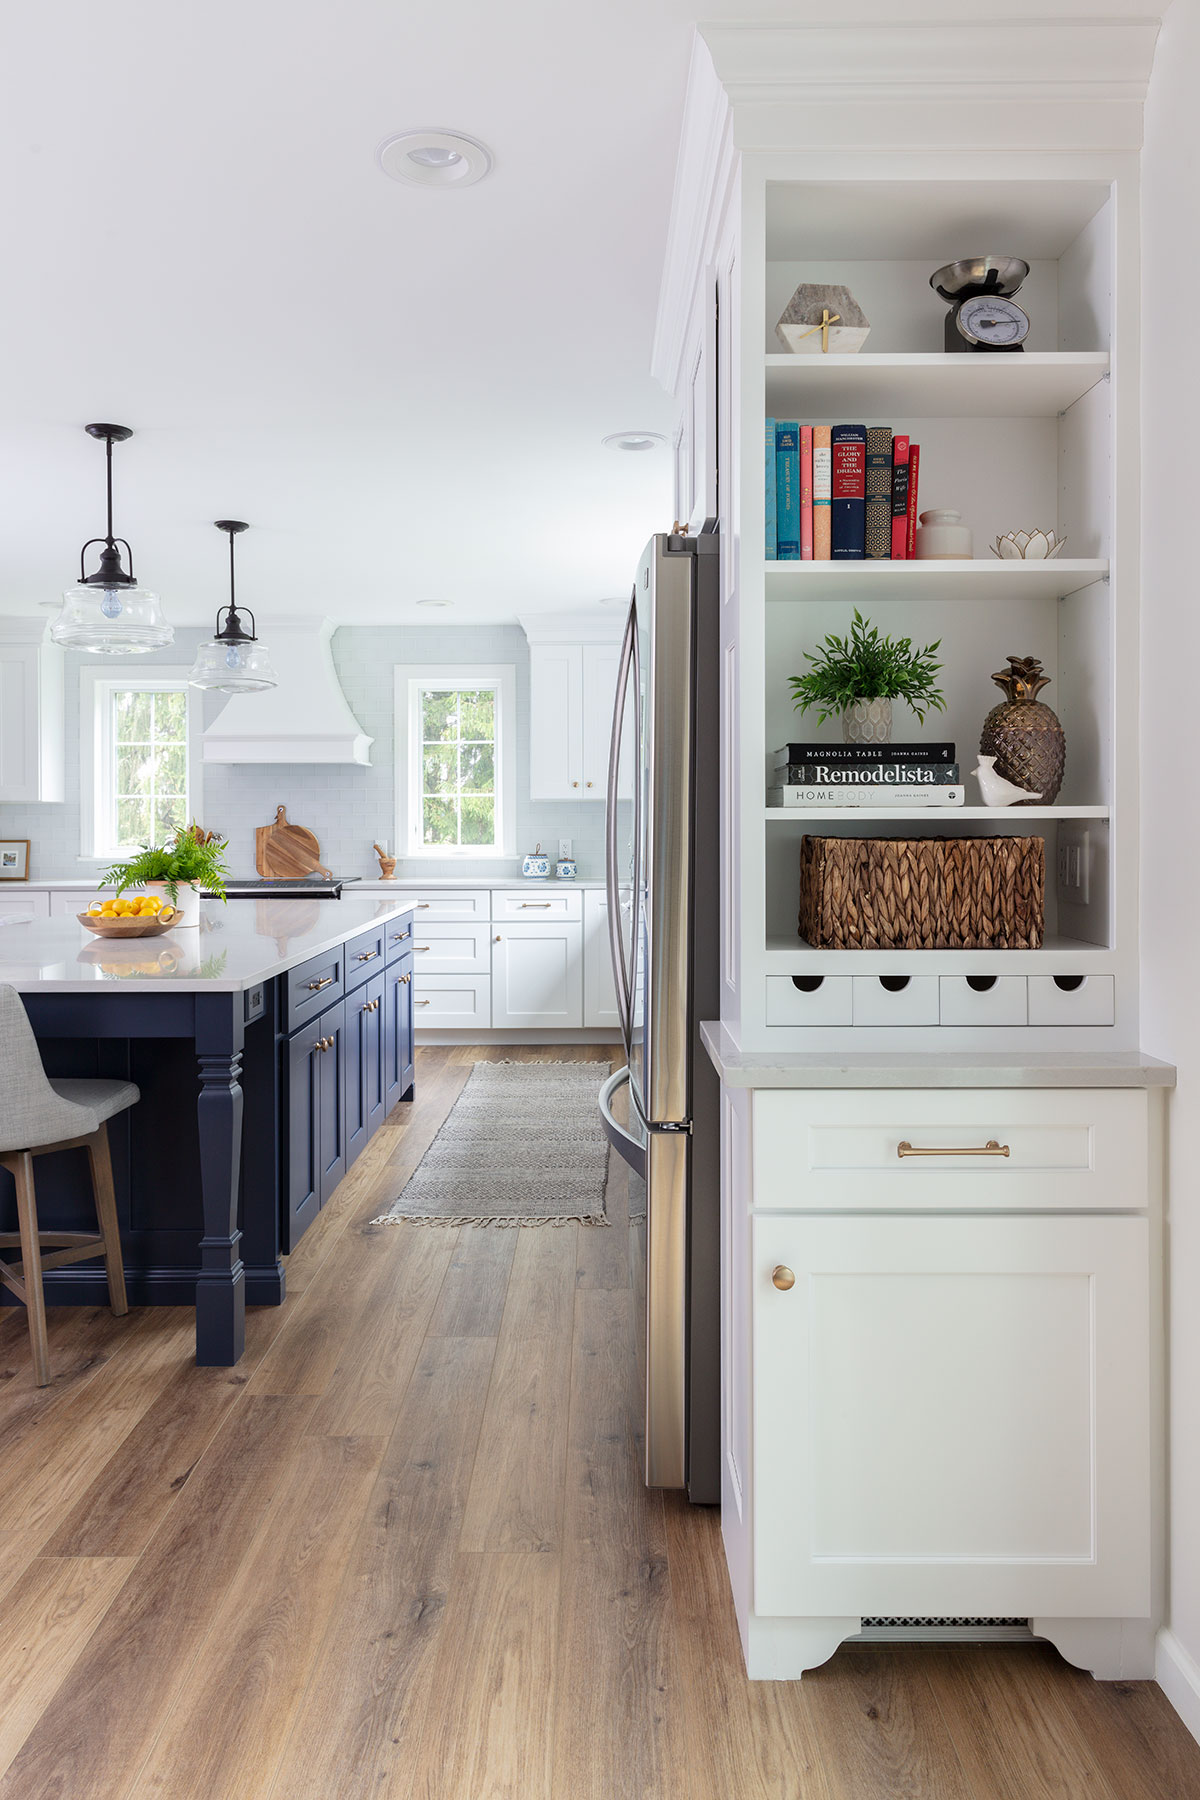 White Kitchen With Navy Blue Island Wins Design Award Bright Ideas By Martinec